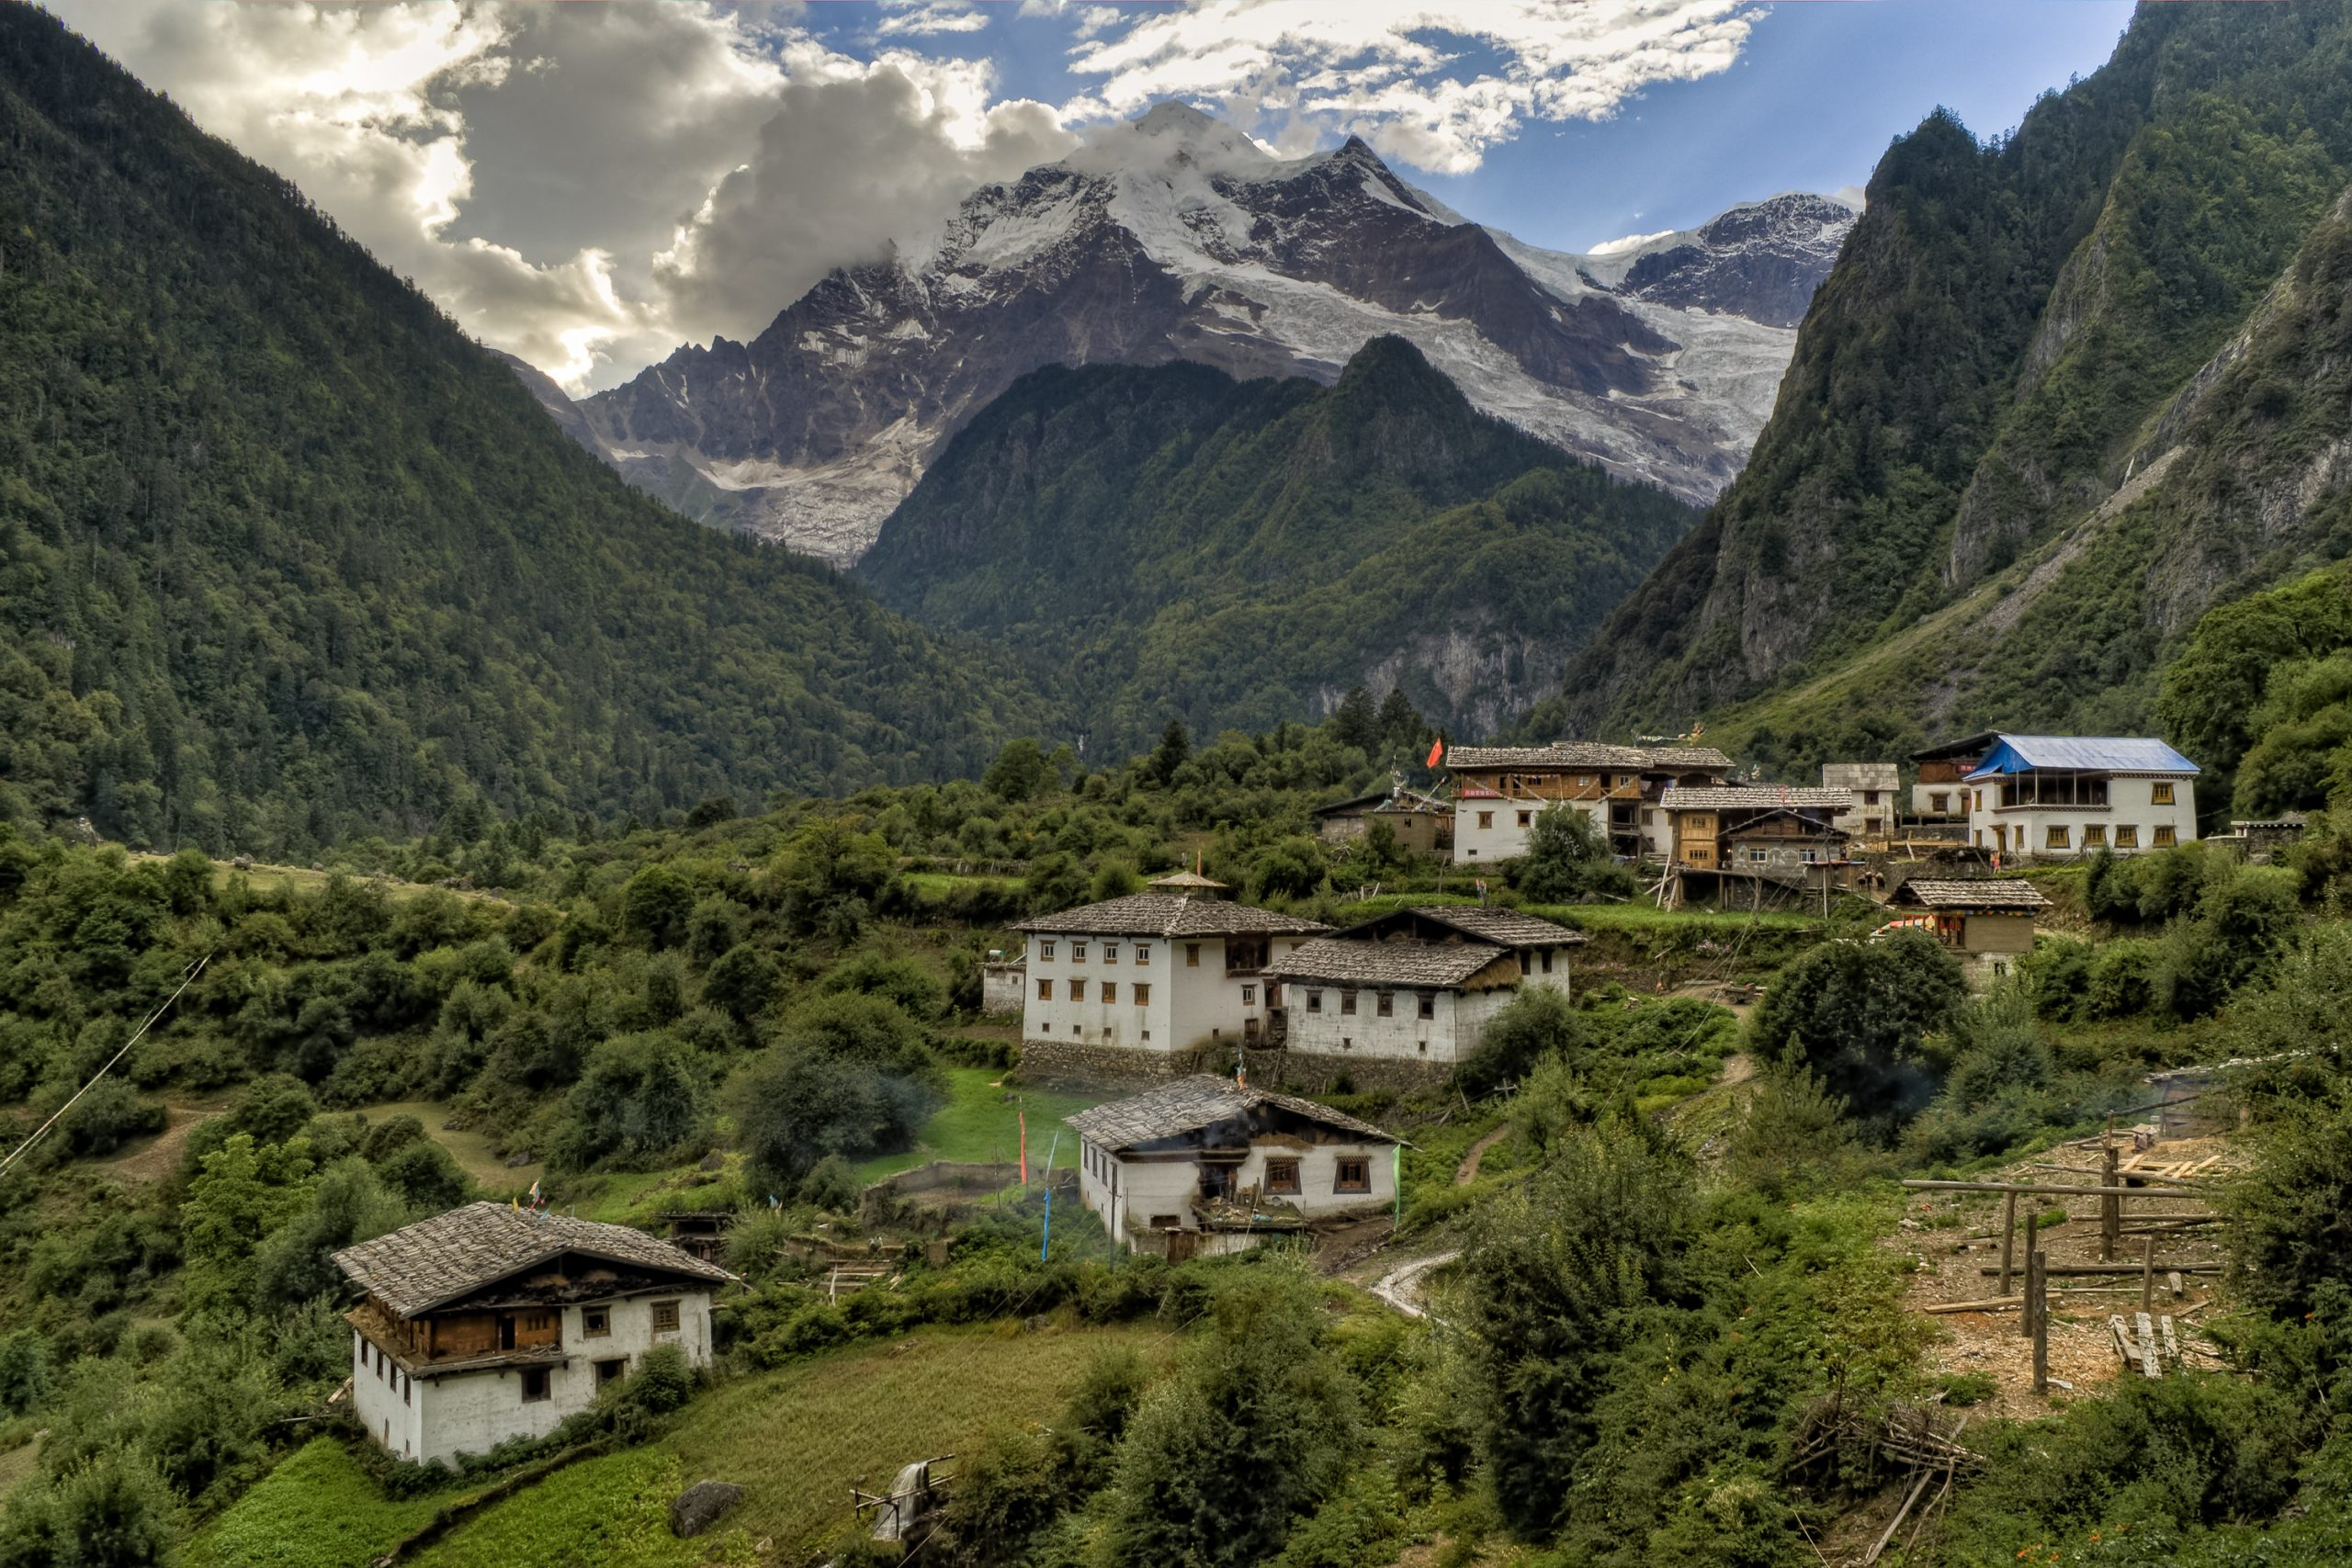 Planning a trip to Nepal? Here's an itinerary for you that will make it a memorable holiday